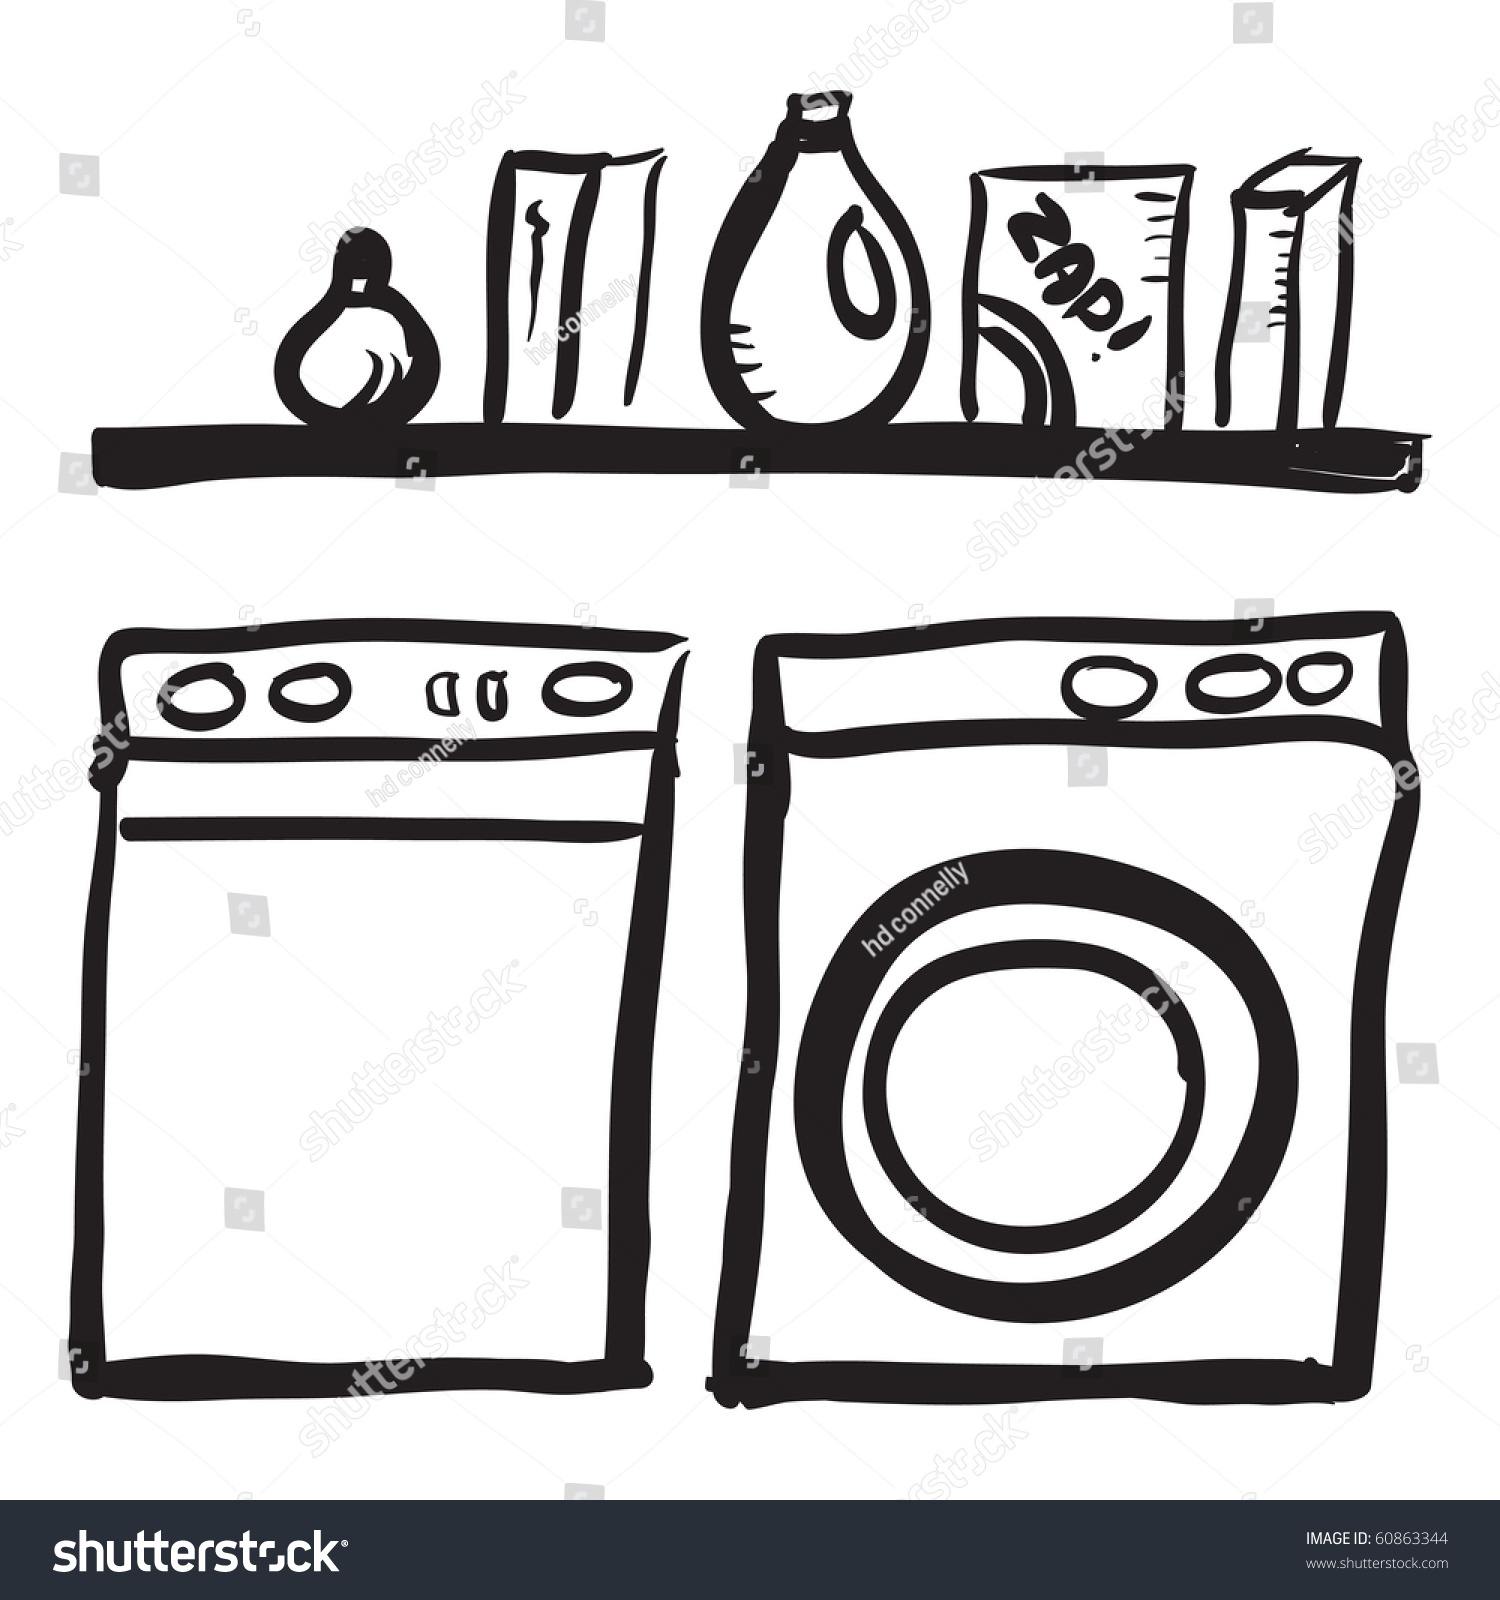 Laundry room clipart black and white clipart download Laundry Room Clip Art Cliparts, Clip Art Black White Laundry Bags ... clipart download